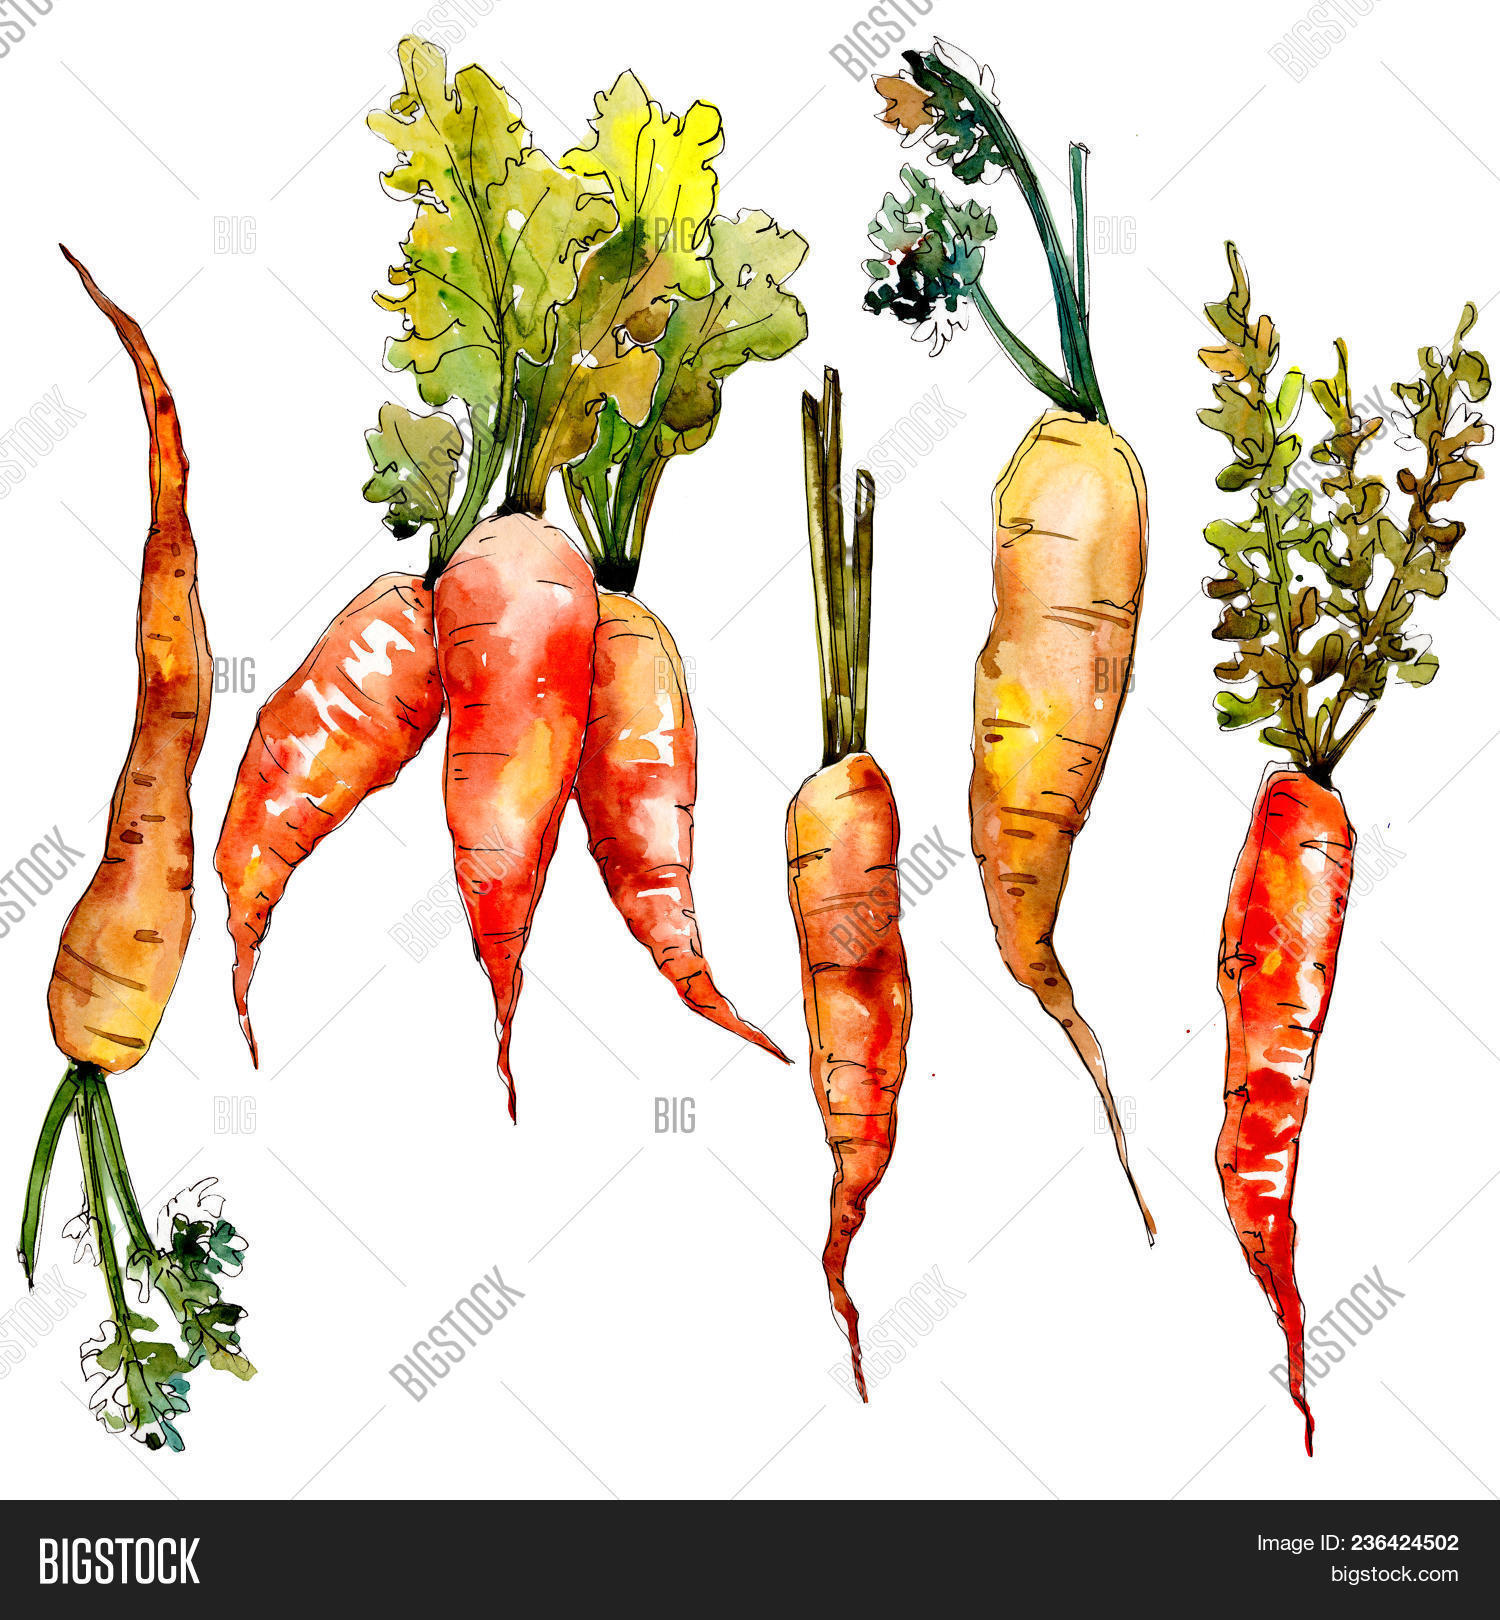 Carrot Healthy Food Image & Photo (Free Trial)   Bigstock